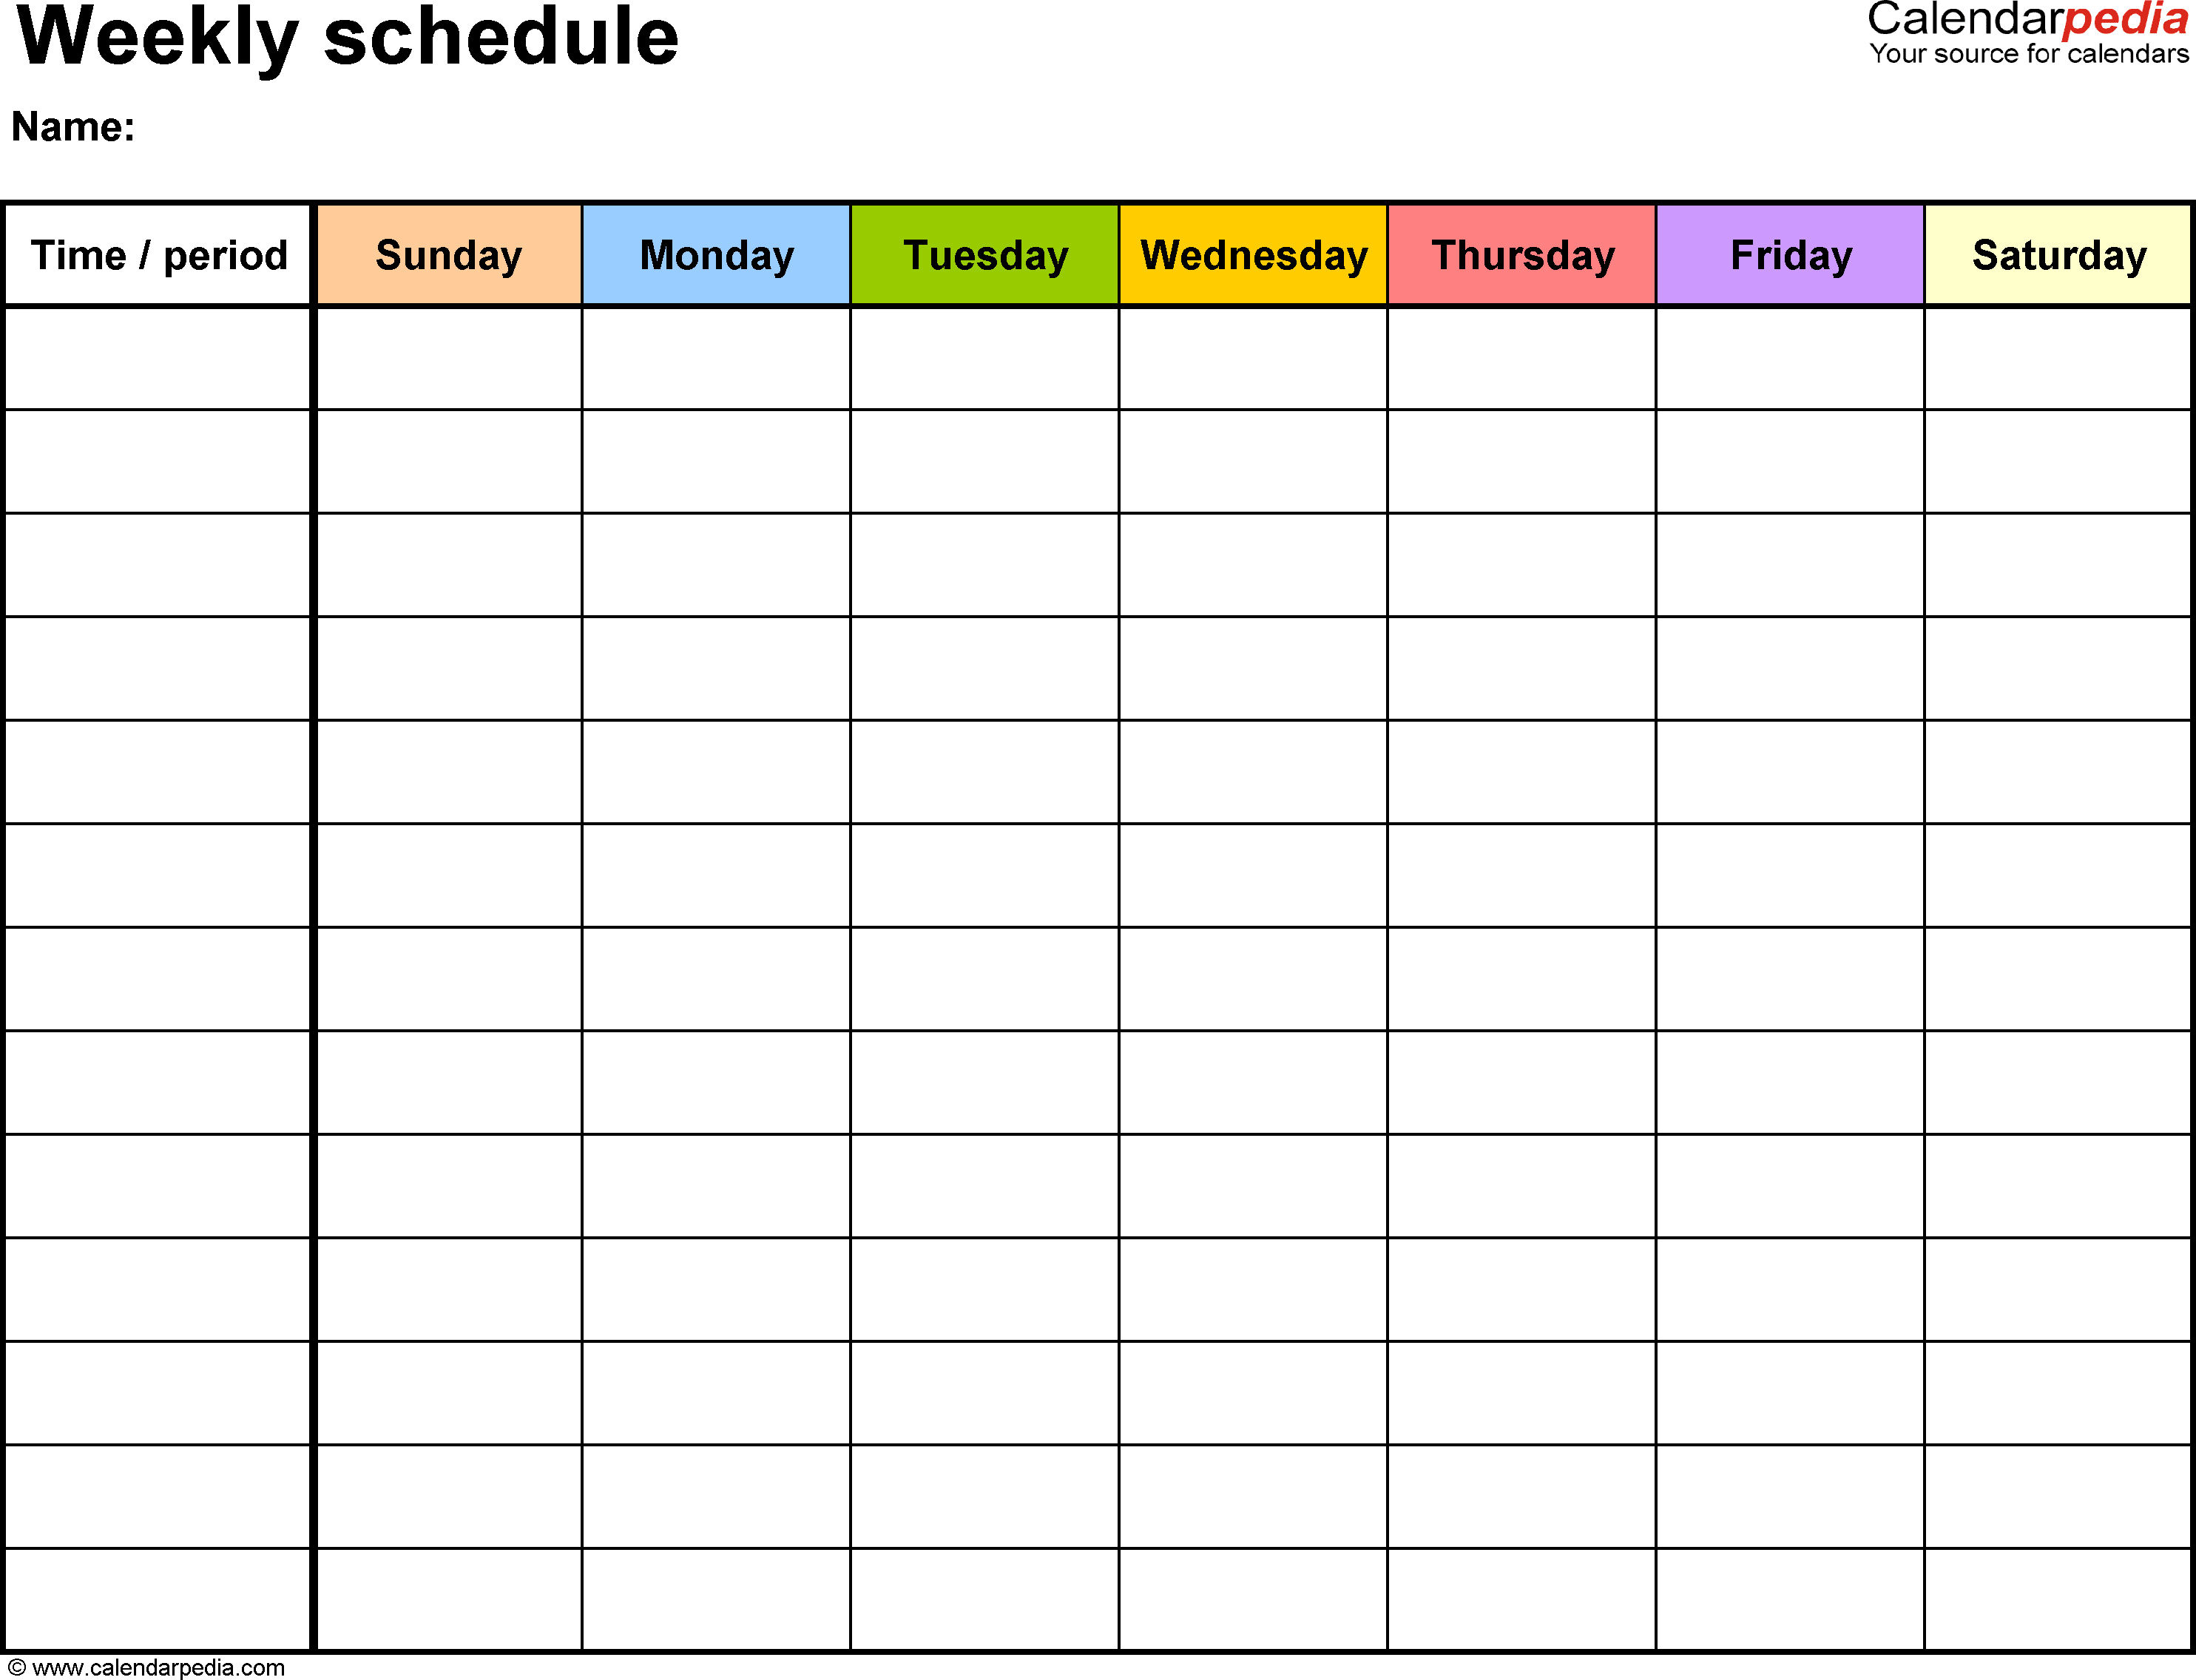 Free Weekly Schedule Templates For Excel   18 Templates For Monthly Staff Schedule Template Free